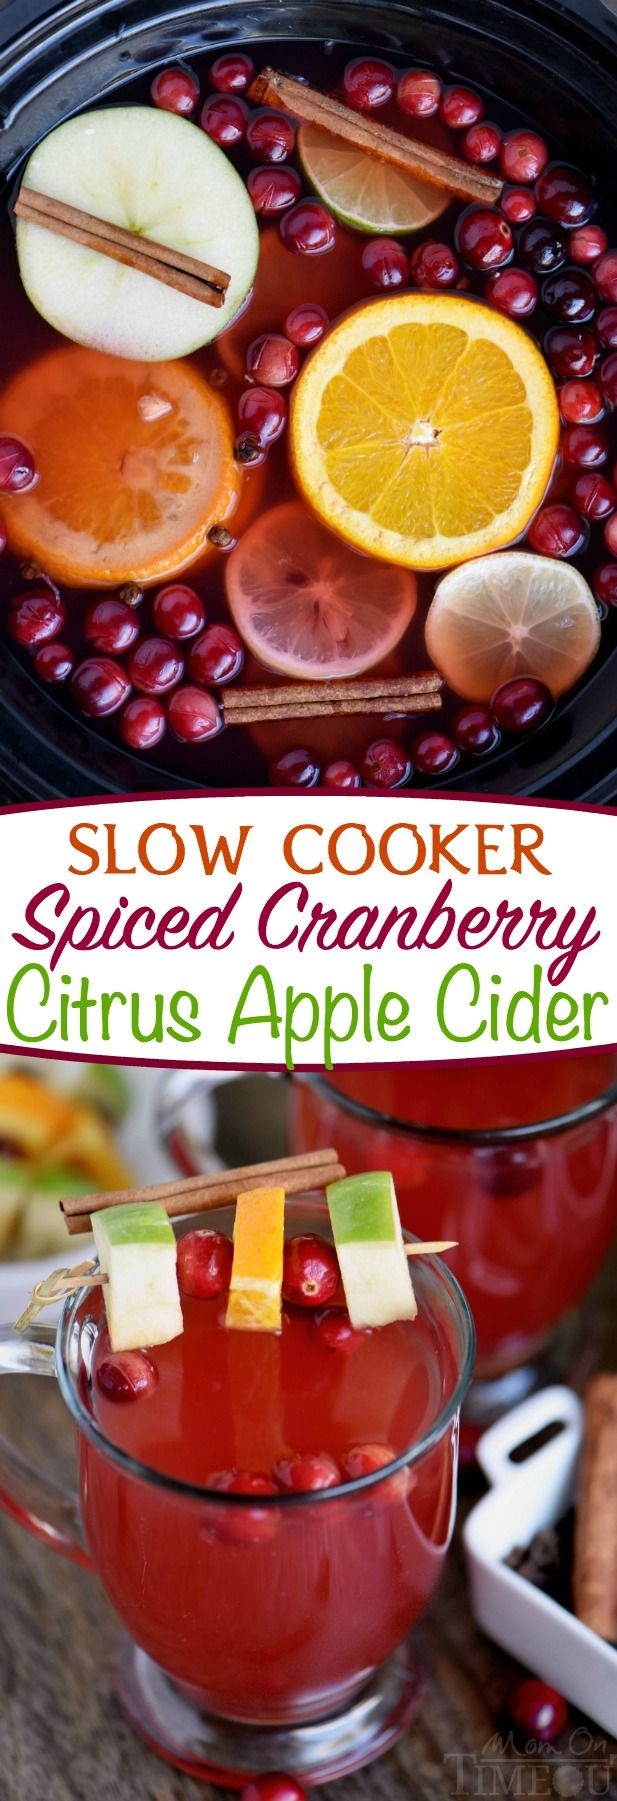 This Slow Cooker Spiced Cranberry Citrus Apple Cider is the beverage of choice this season! Fill your home with it's delightful fragrance and your belly with it's spicy warmth!